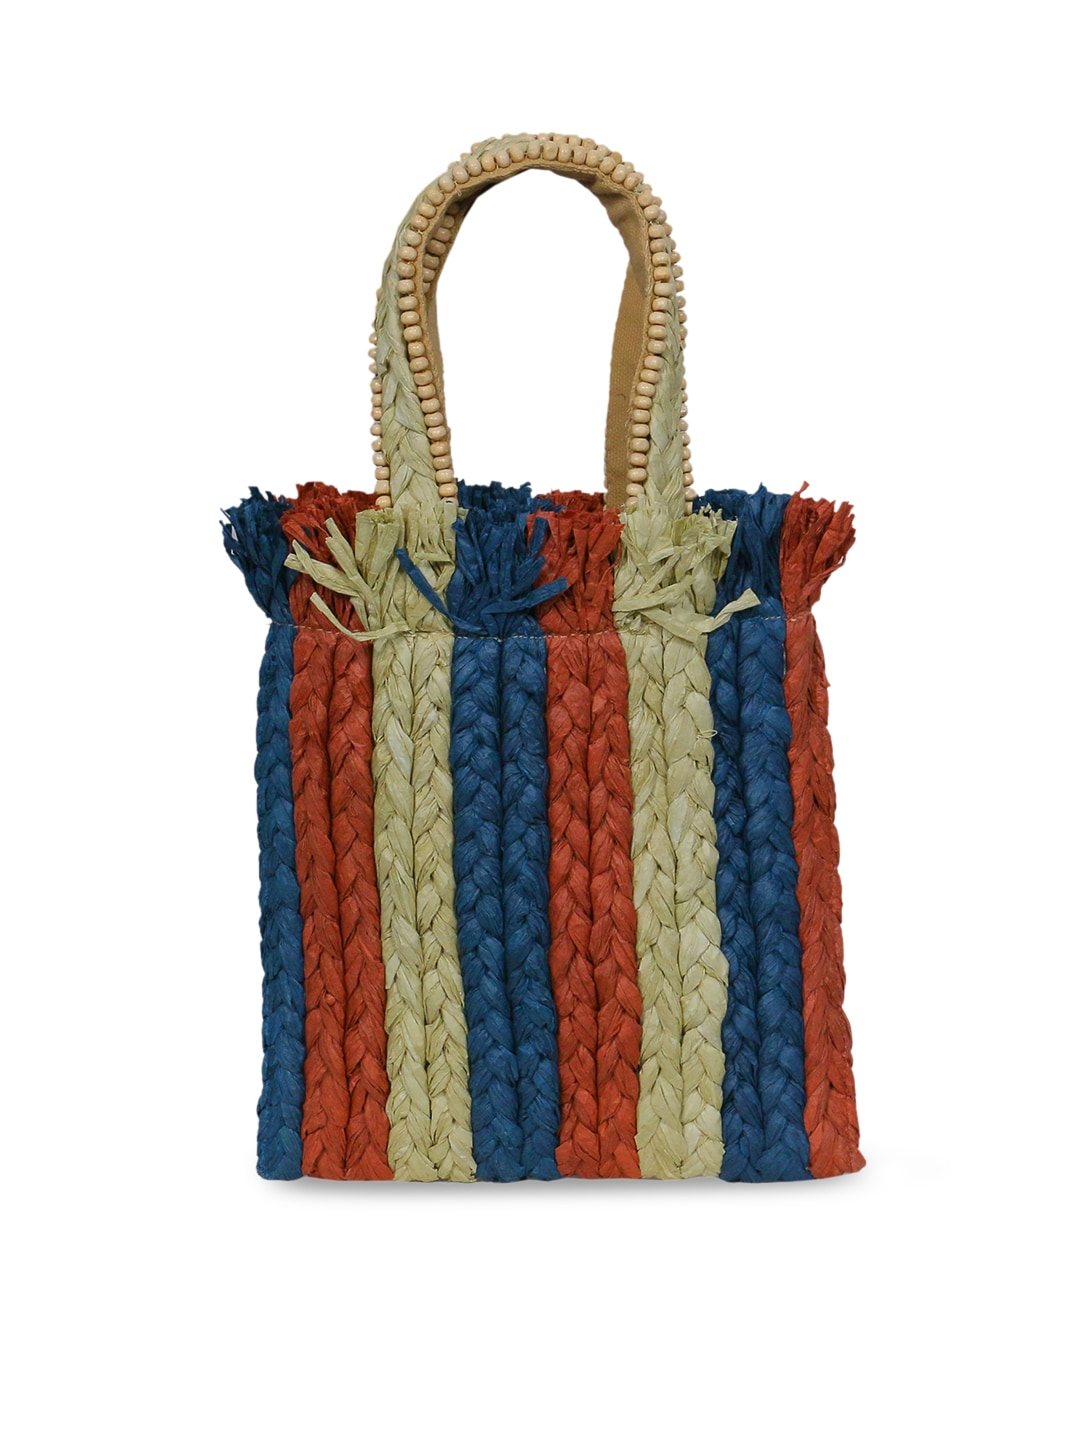 3e01e2d15aa78b Tote Bag - Buy Latest Tote Bags For Women & Girls Online | Myntra